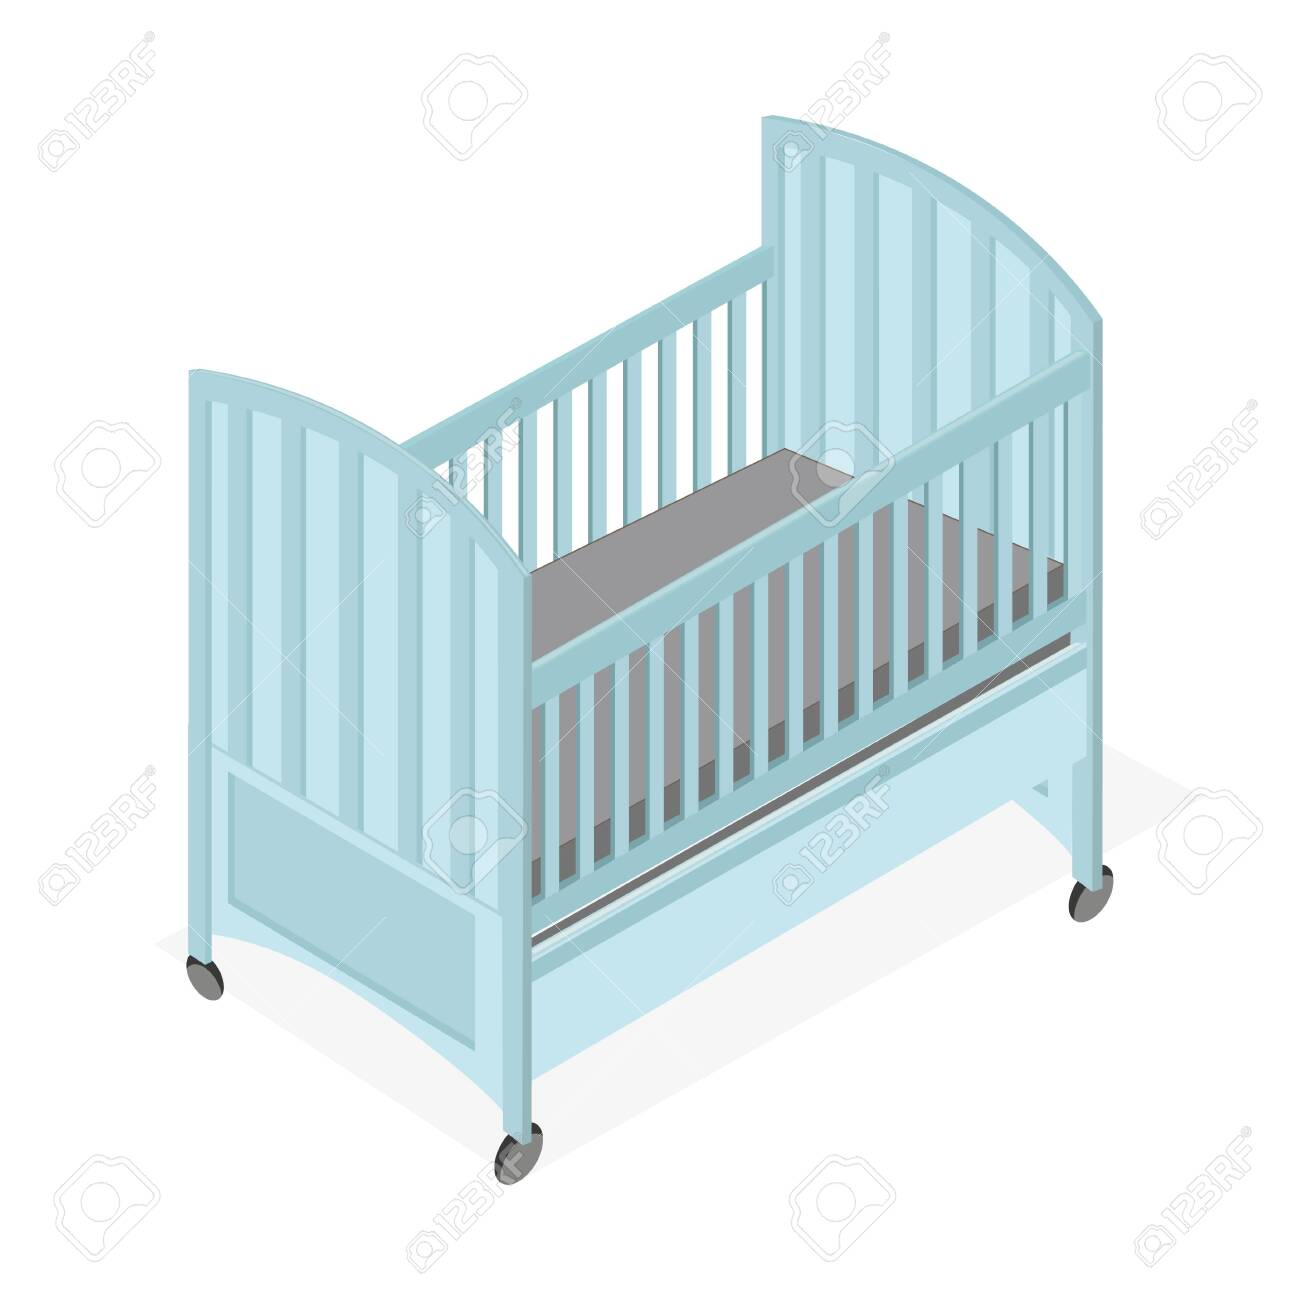 Blue Wooden Baby Cot Simple Isometric Style Royalty Free Cliparts Vectors And Stock Illustration Image 130565943